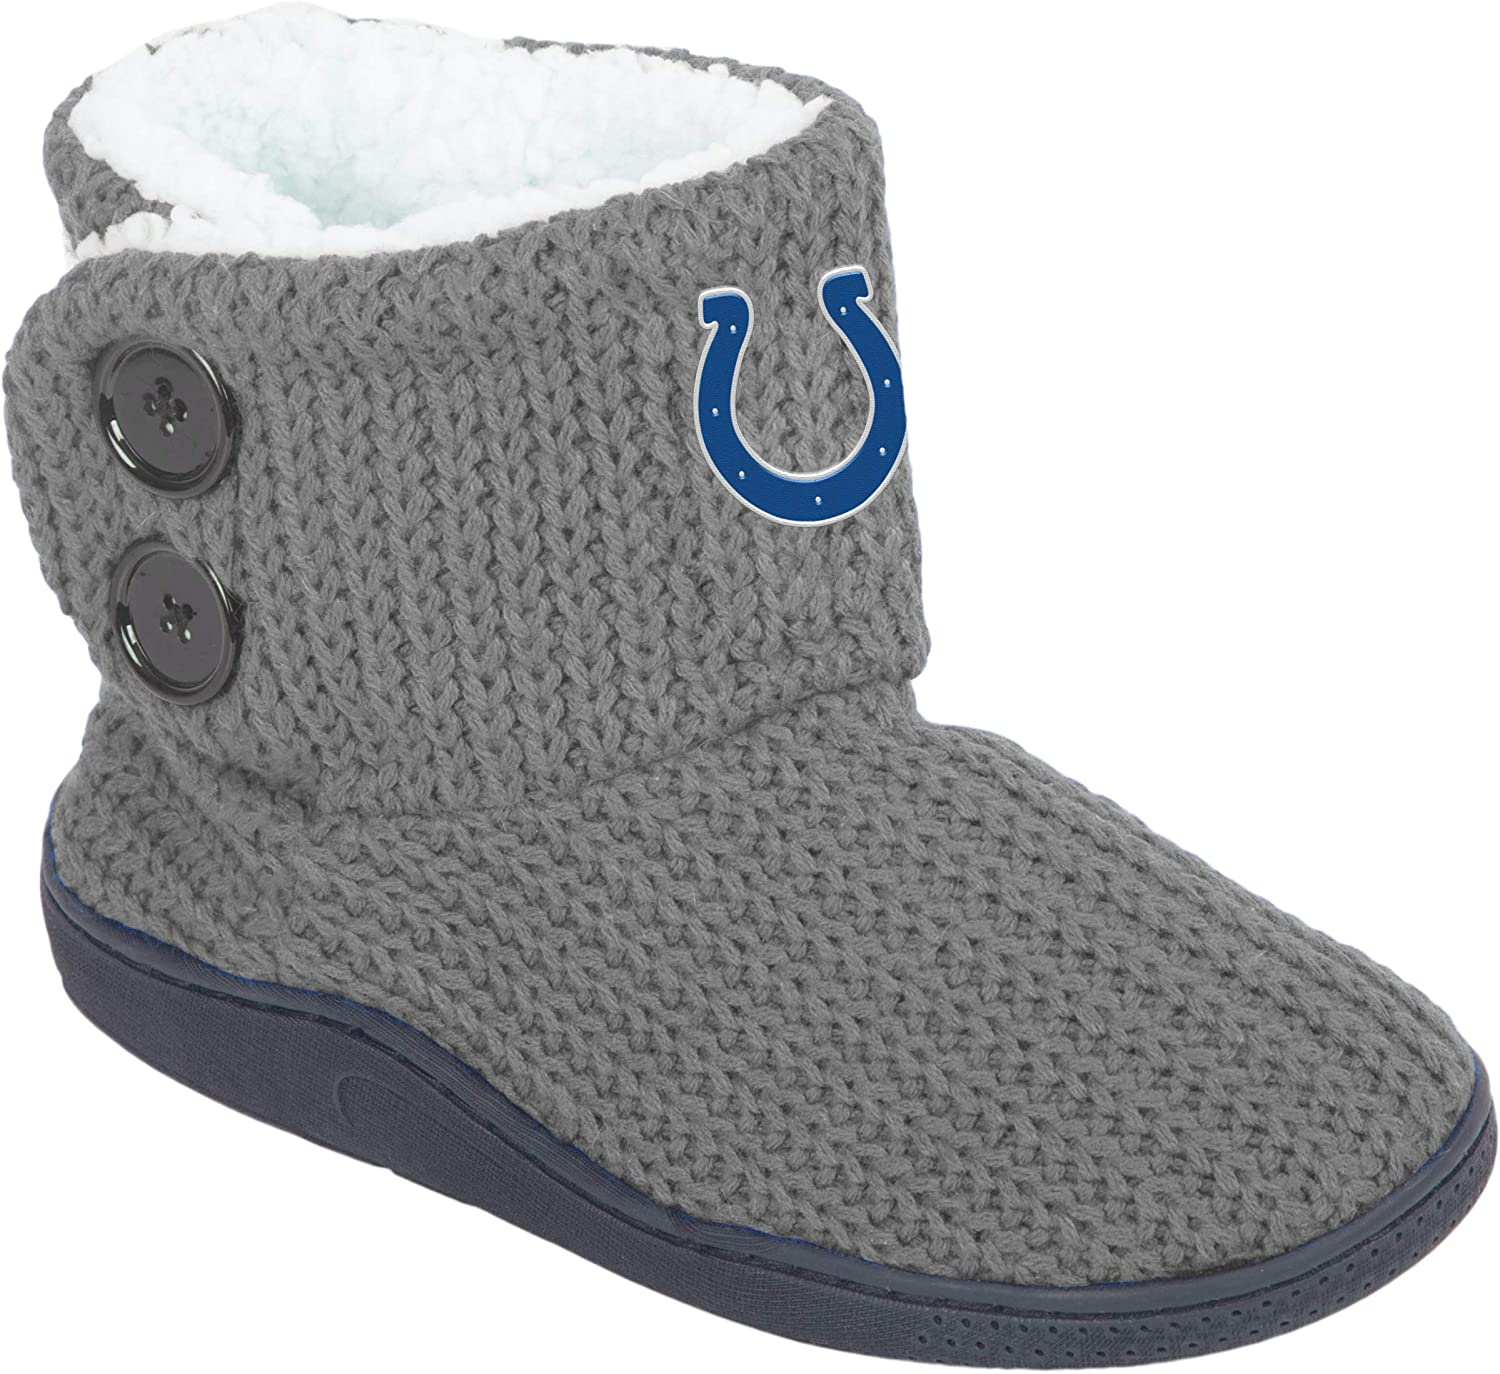 (Indianapolis Colts, Medium   7-8, Team color) - FOCO NFL Womens Knit 2 Button Boot